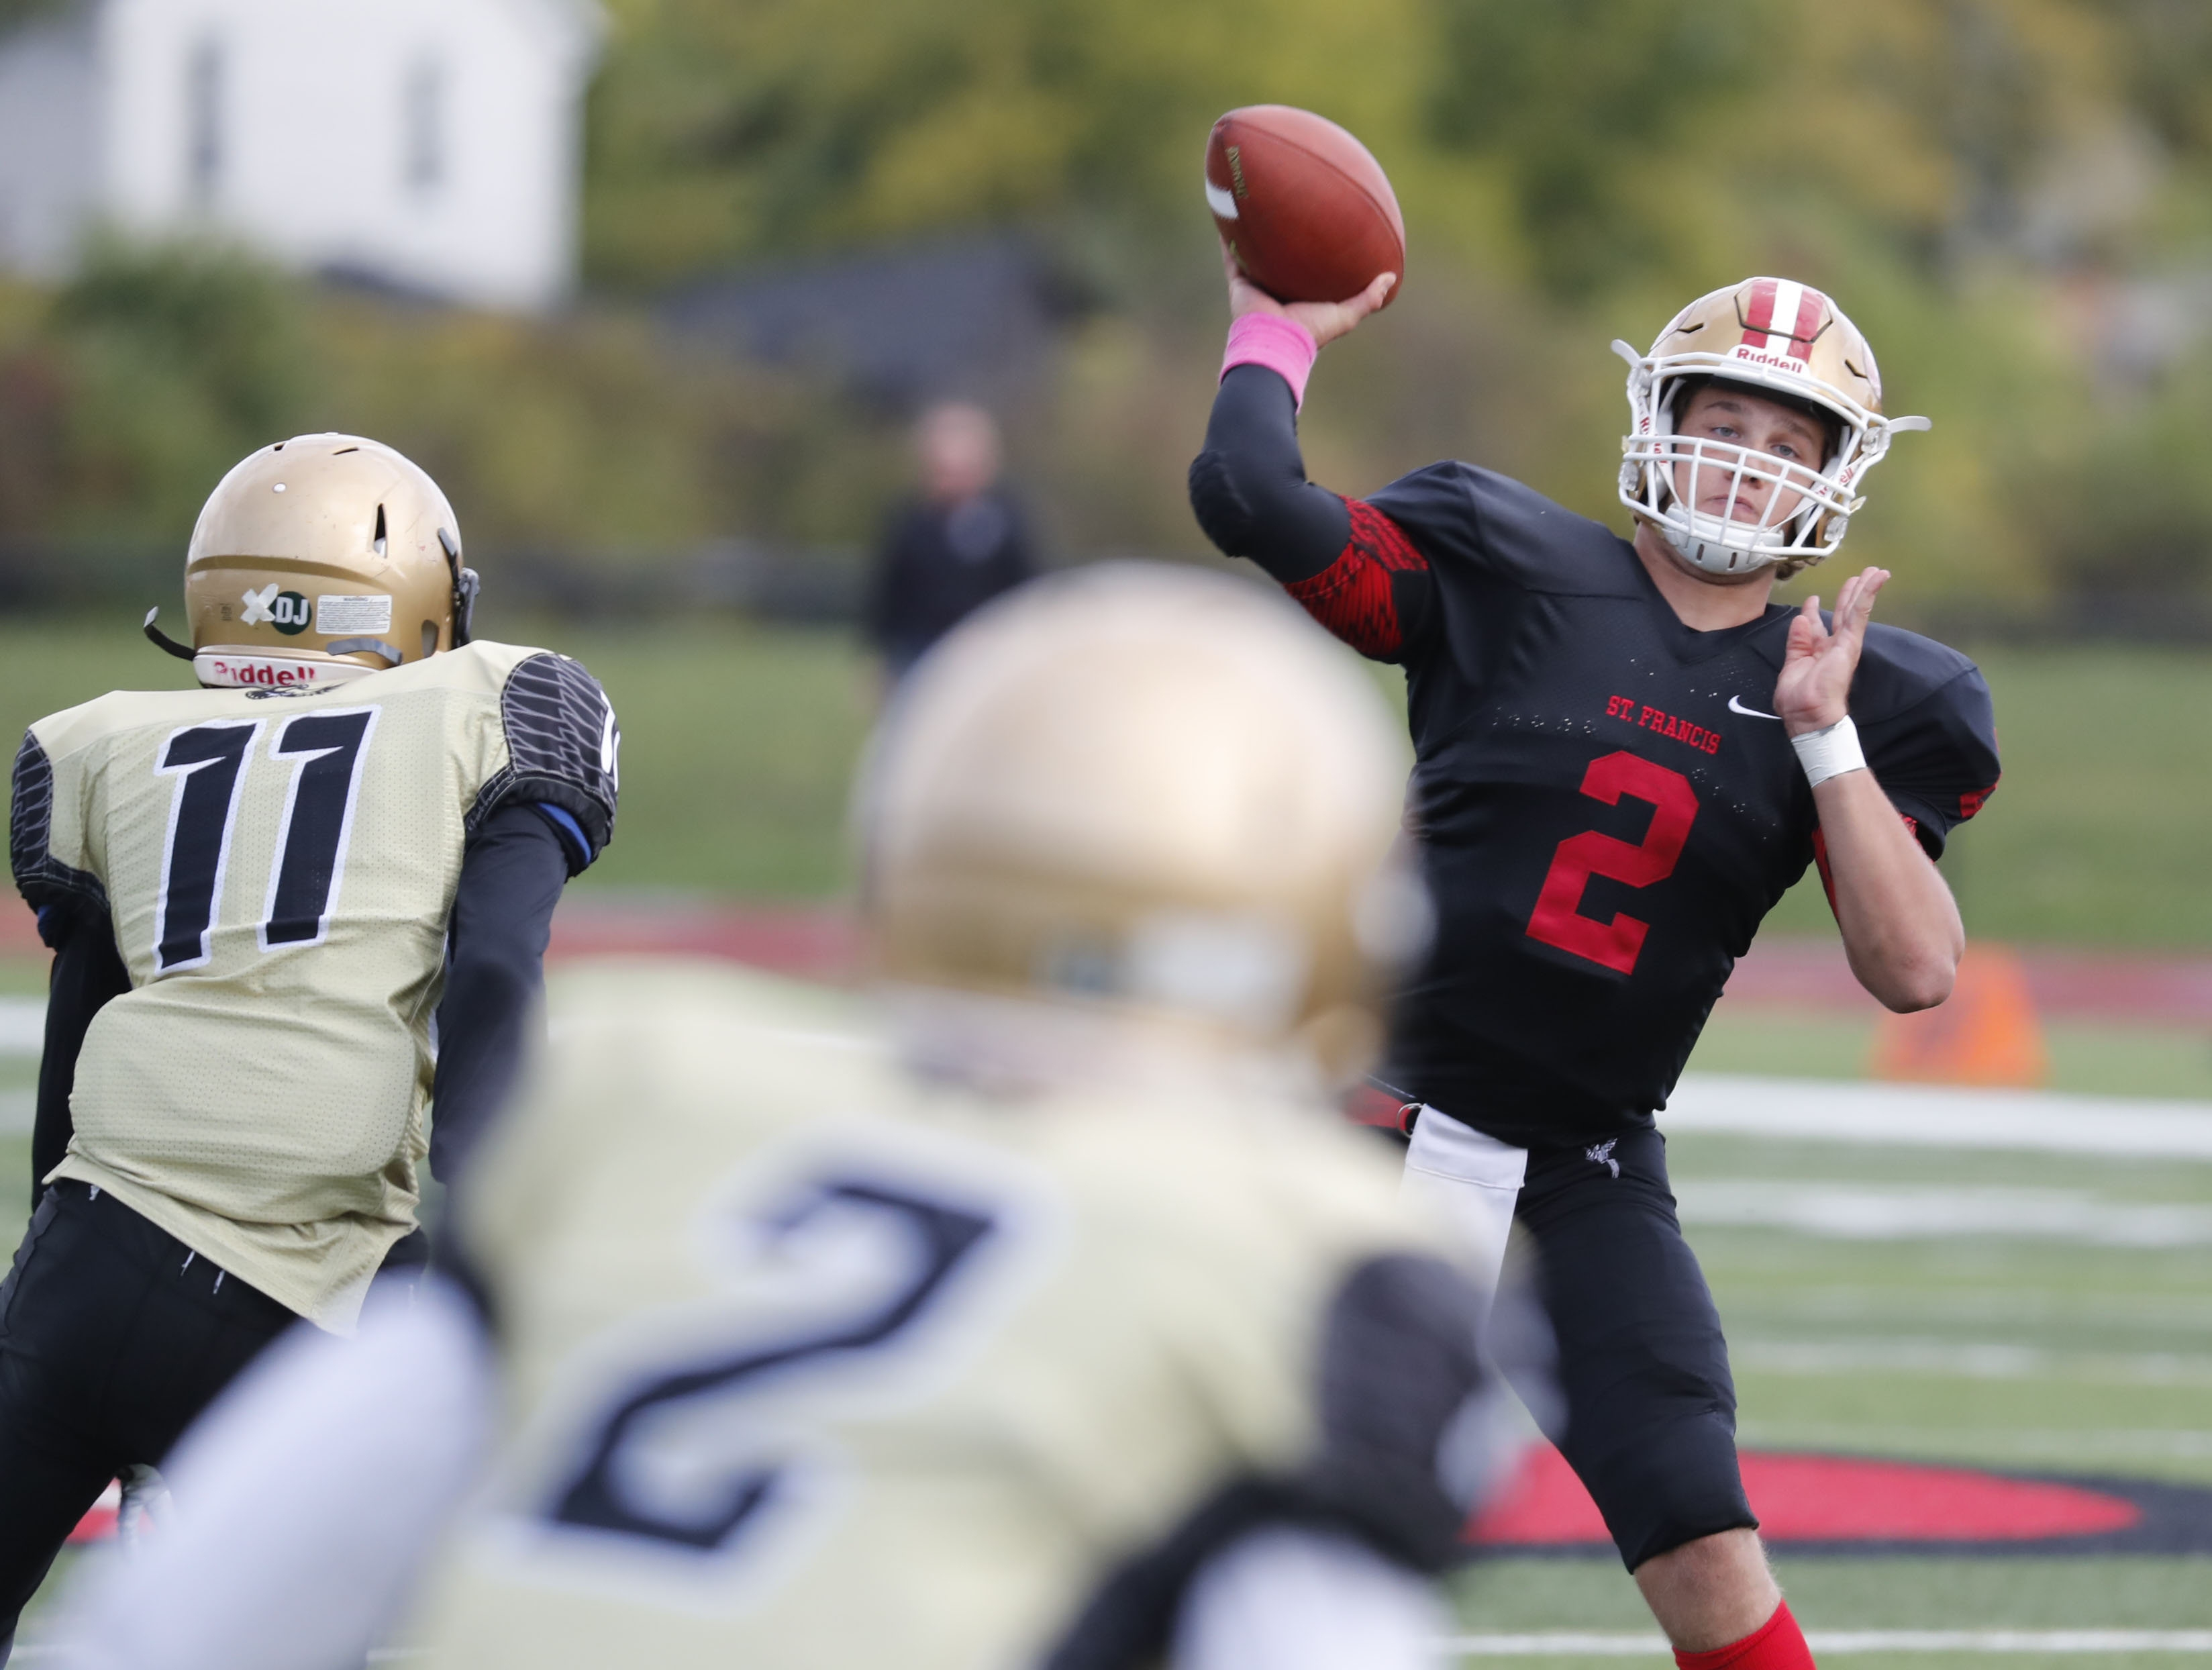 St. Francis quarterback Jerry Hickson became WNY's career passing leader during Saturday's victory over O'Hara.